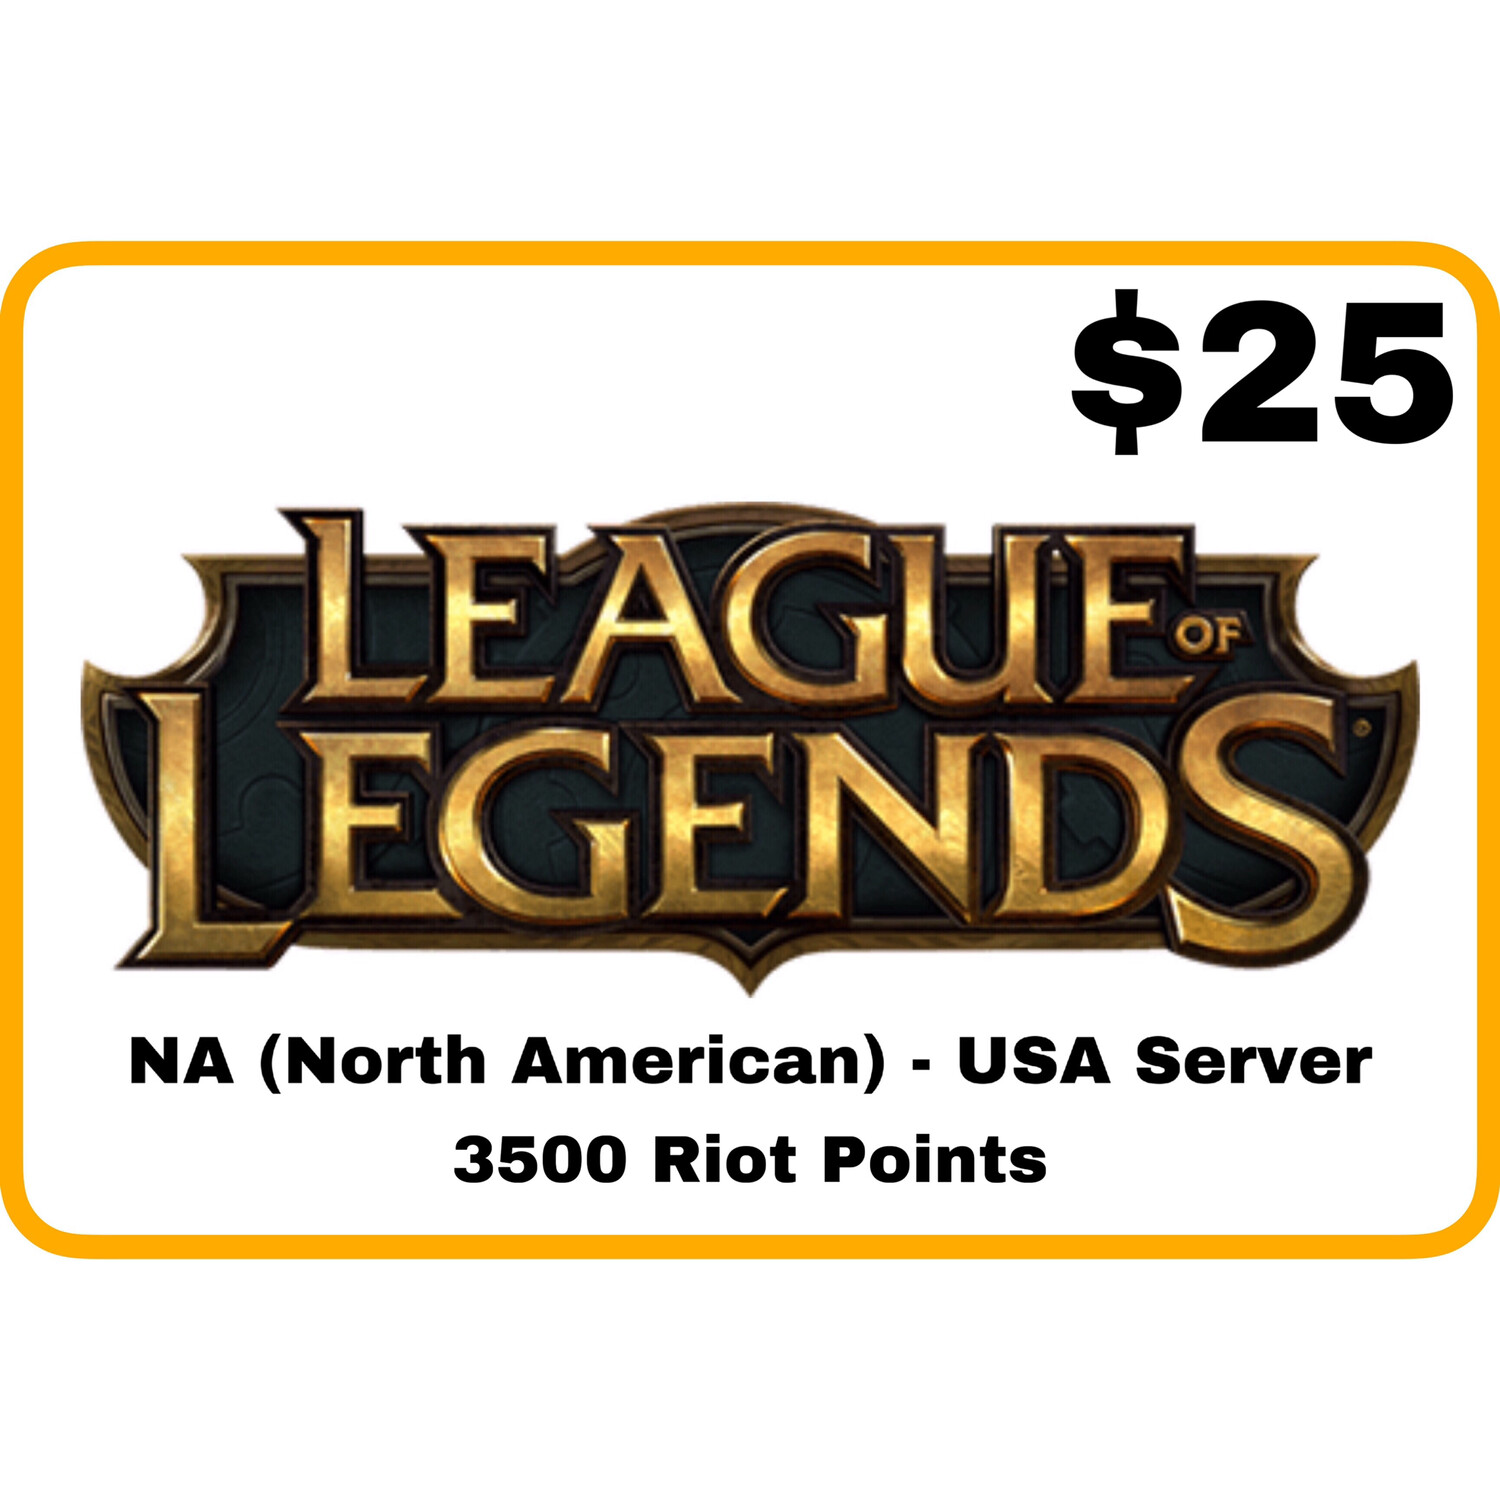 League of Legends $25 NA Server (USA) 3500 Riot Points